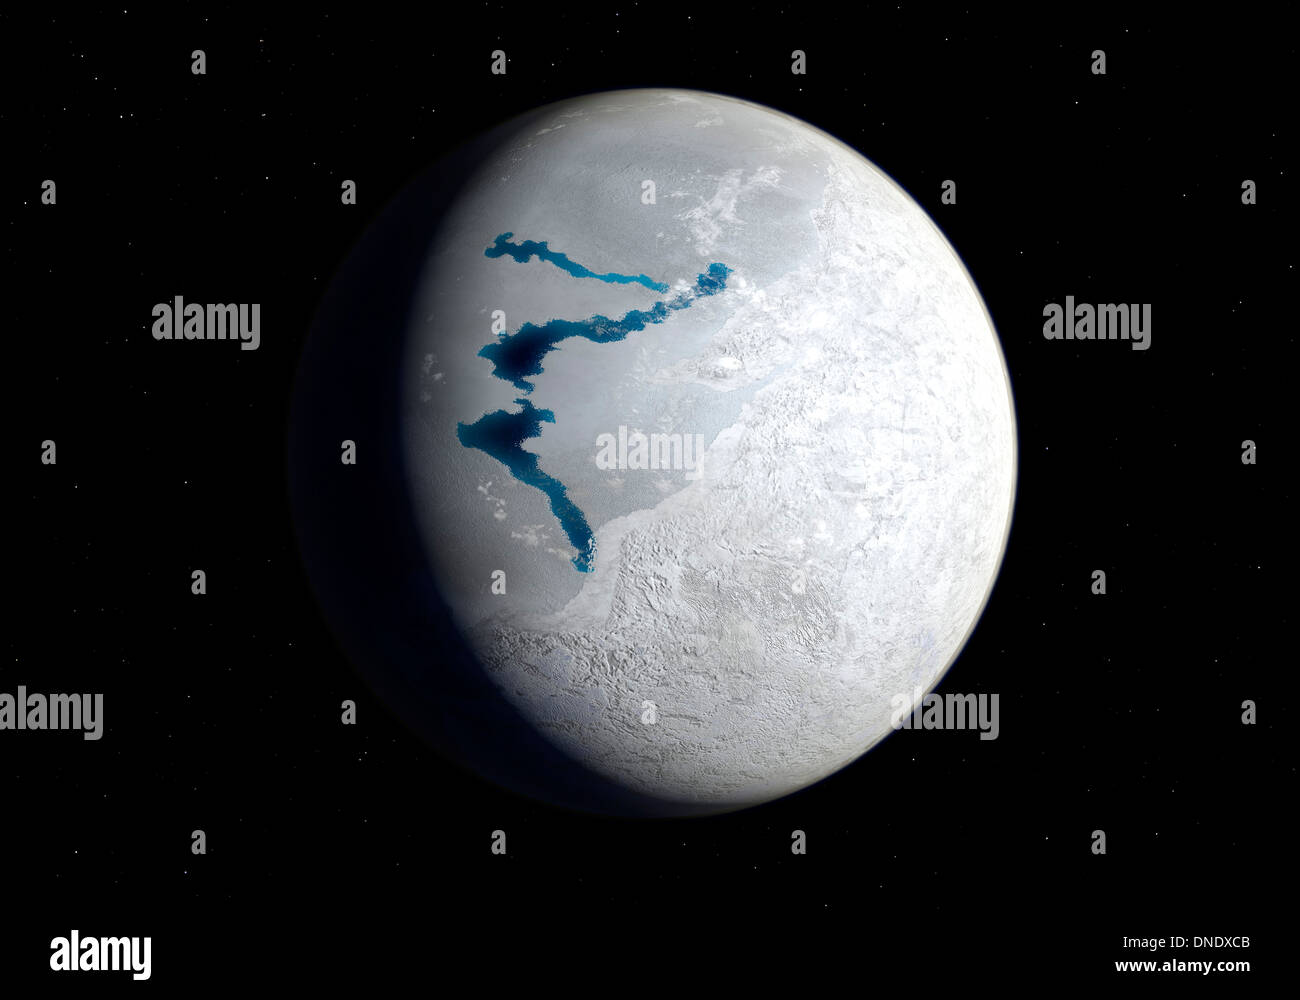 View of Earth 650 million years ago during the Marinoan glaciation. - Stock Image